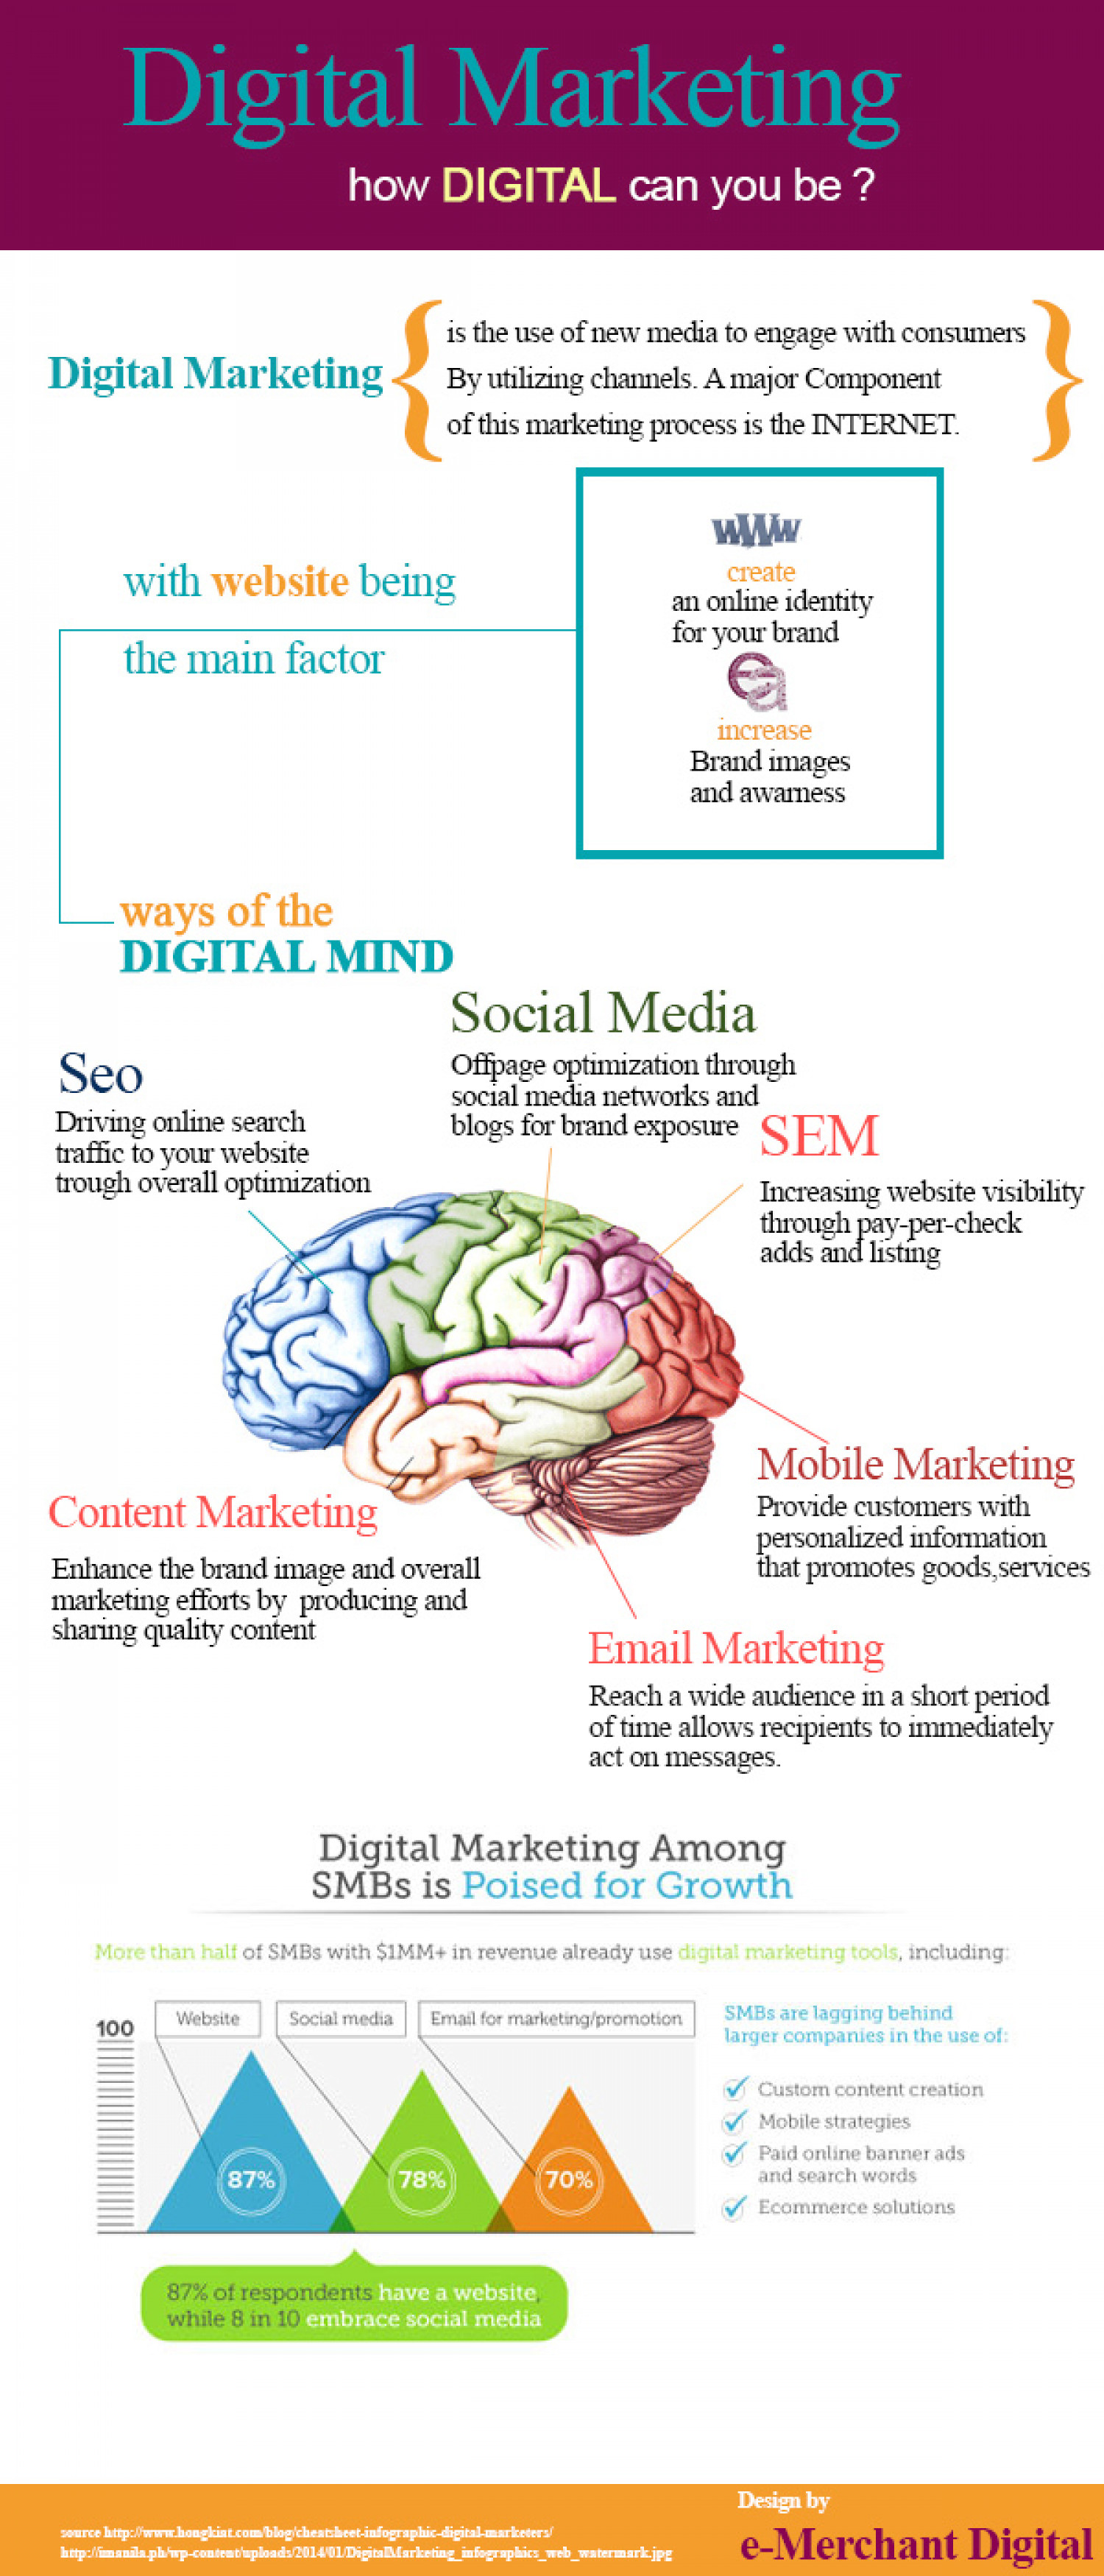 Digital Marketing Trends for Small and Medium Businesses Infographic